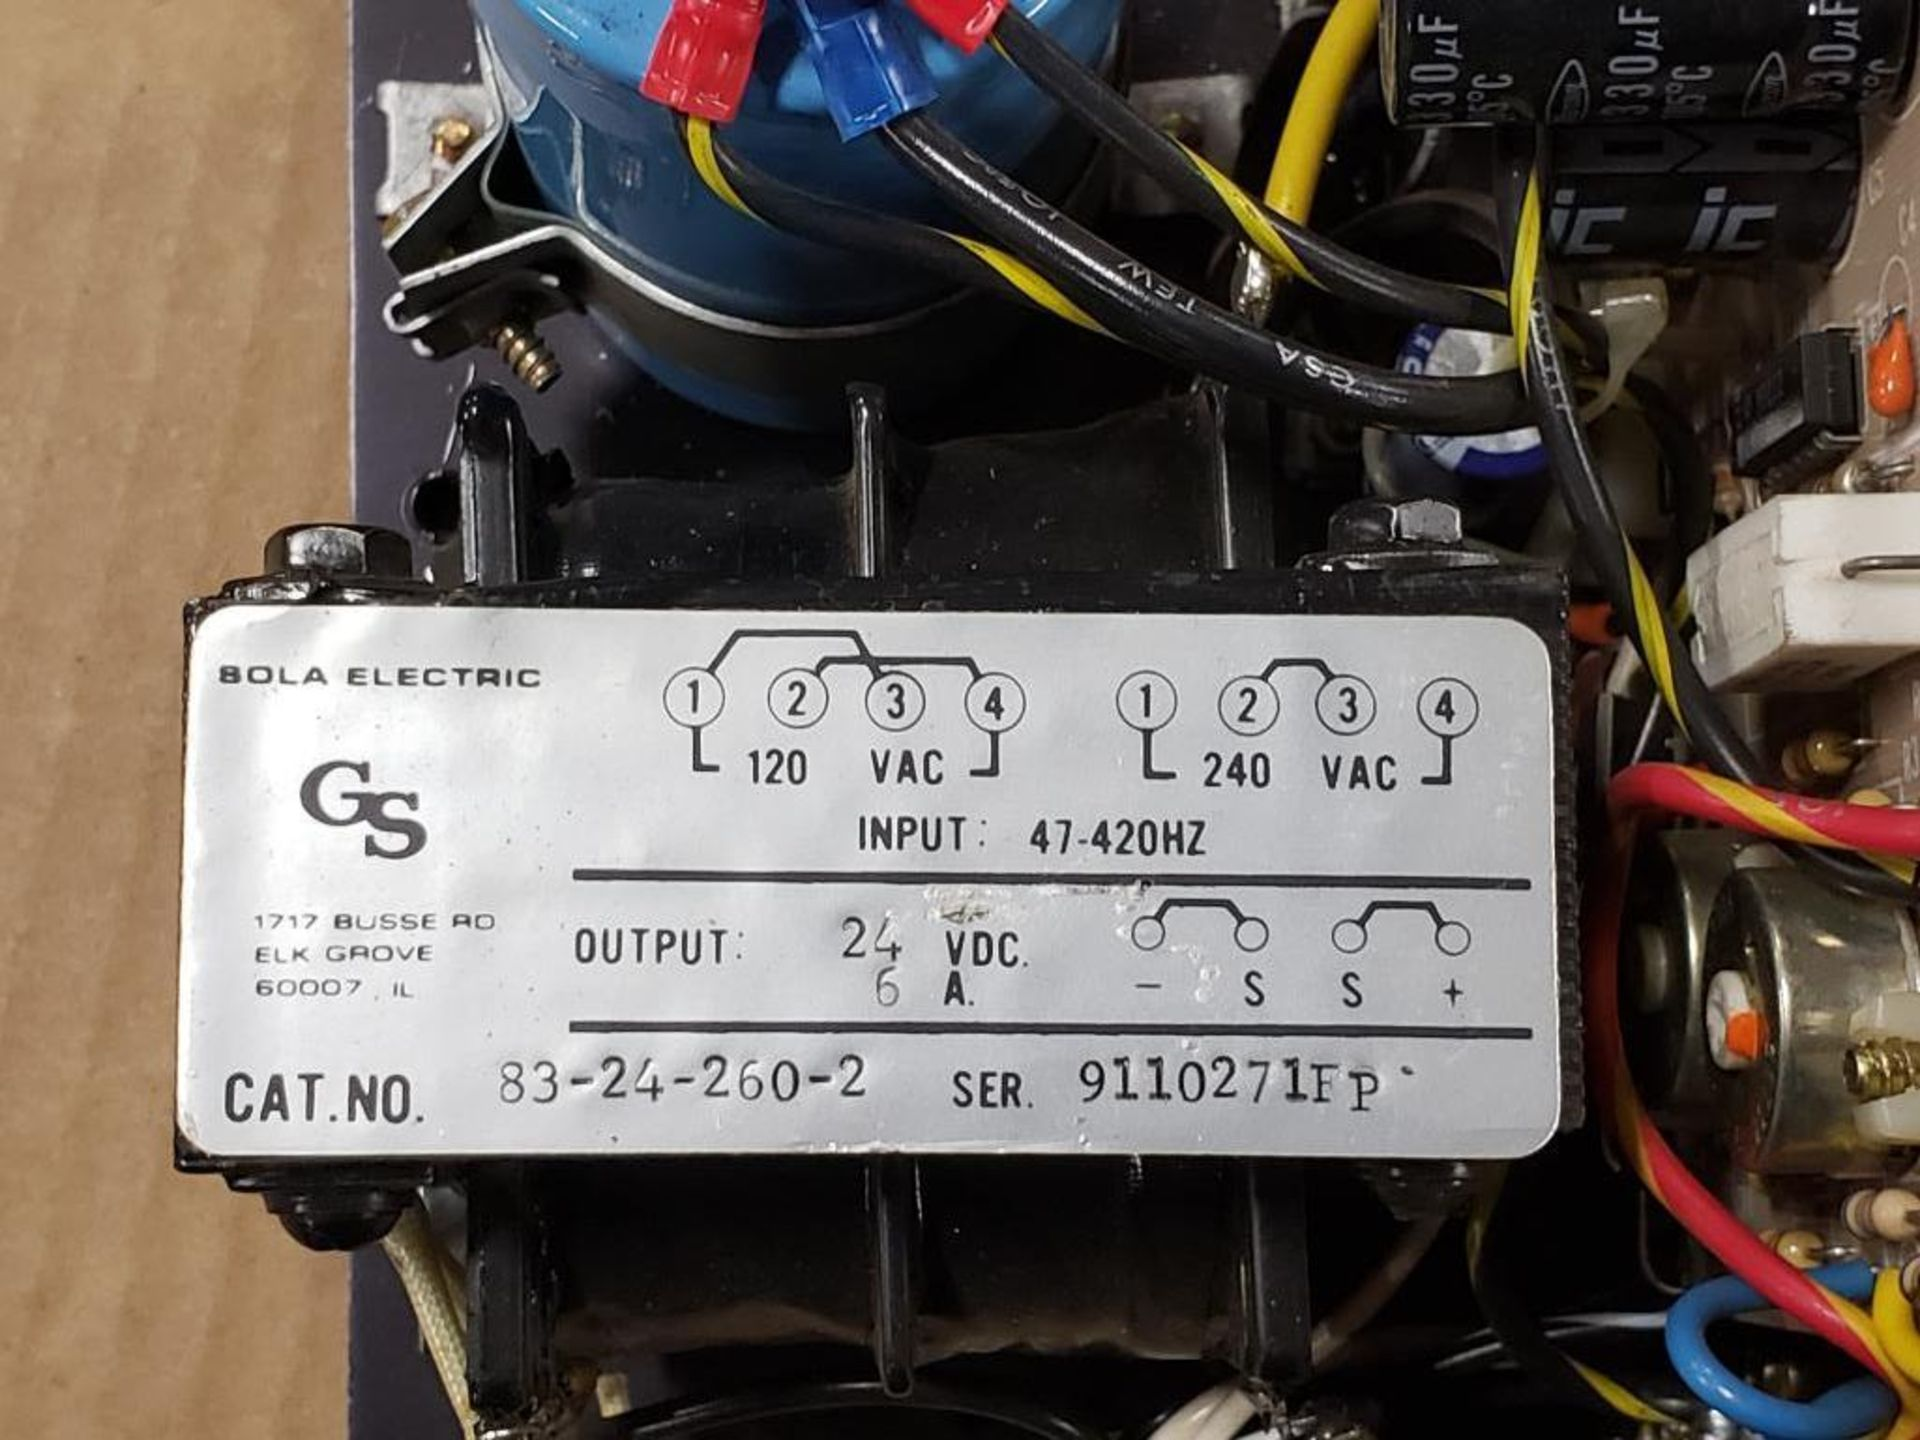 Sola Electric 83-24-260-2 Power supply. - Image 2 of 5